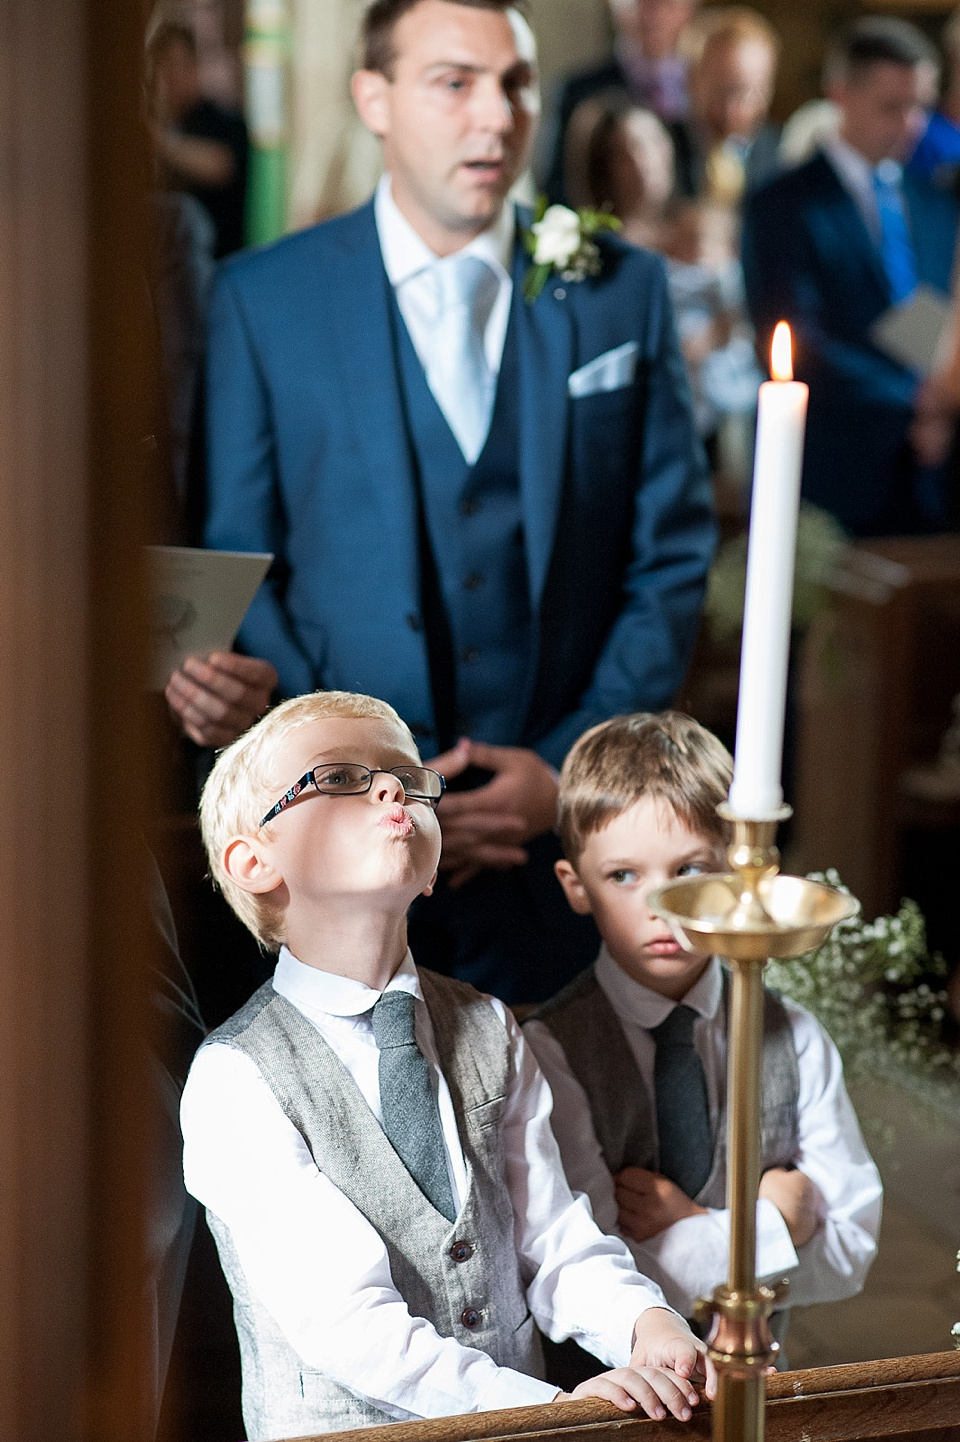 Pageboys looking at candle - English country garden wedding All Hallows Church Woolbeding Sussex wedding photographer © Fiona Kelly photography